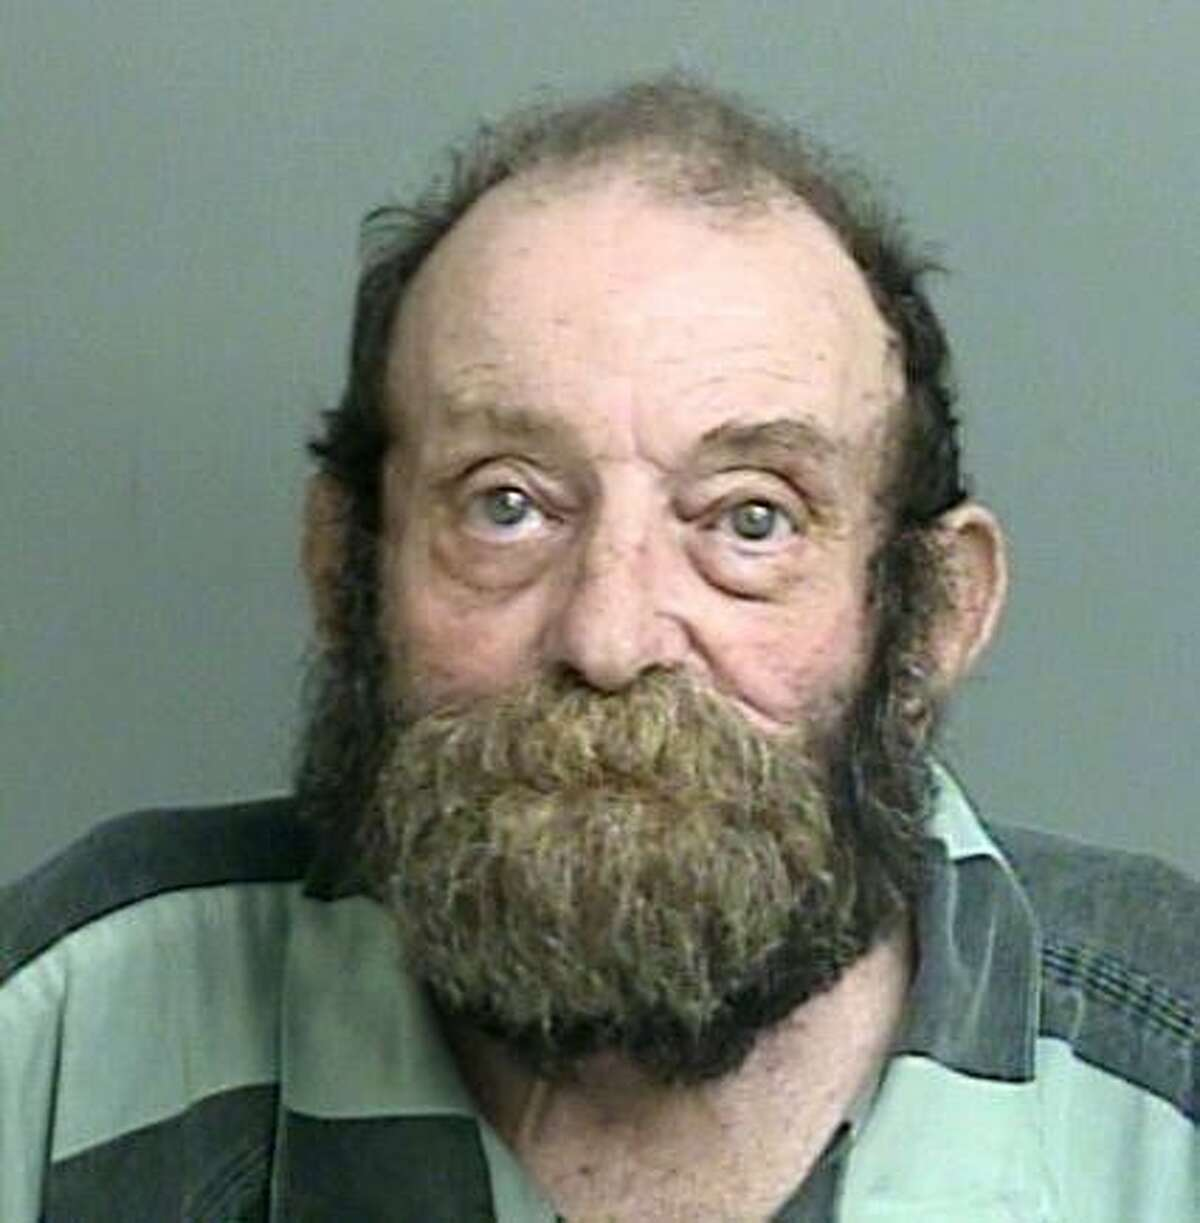 """NORRIS, William Phillip Sr.White/Male DOB: 06-24-1942 Height 5'06"""" Weight: 148 lbs. Hair: Black Eyes: Blue Warrant: #140707942 Bond Forfeiture Accident Involving SBI or Death LKA: FM 1485, New Caney."""